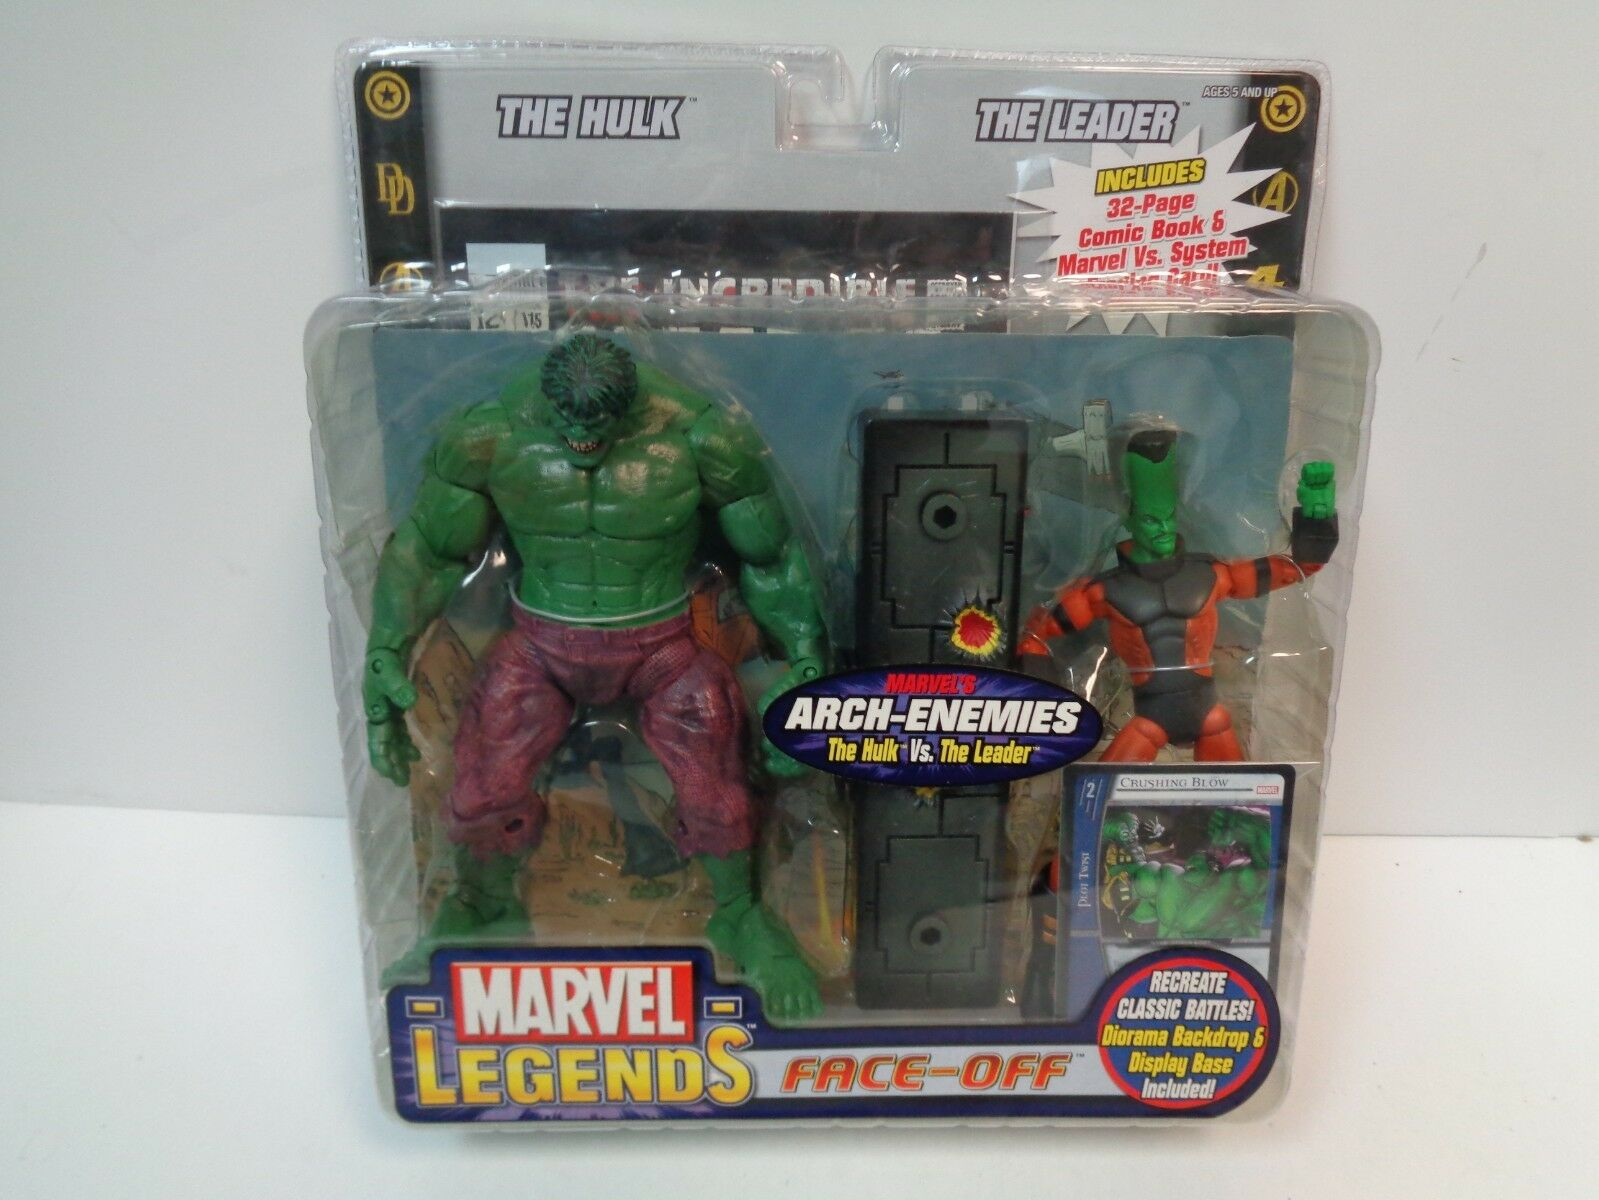 Arco De Marvel Legends-enemigos Hulk Hulk Hulk vs. el líder - 2018 Toy Biz c7cbe3